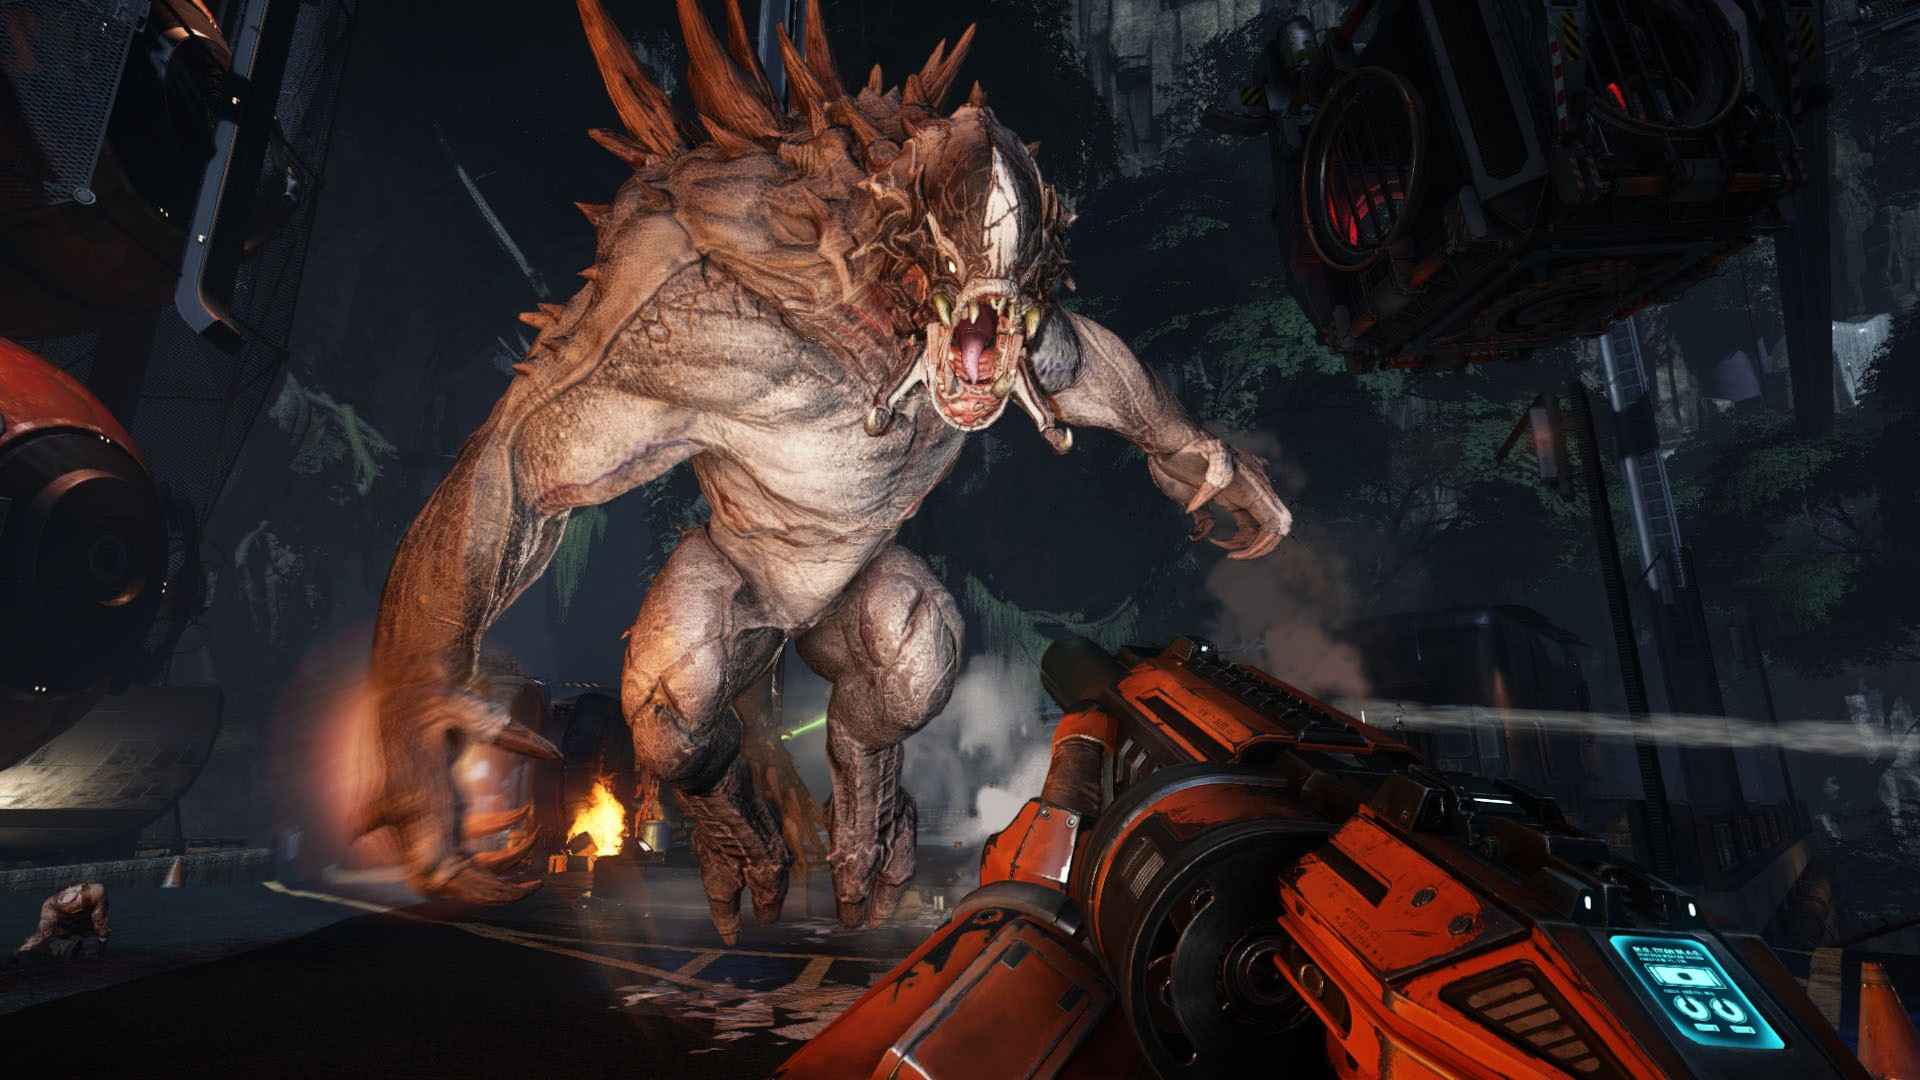 Parnell-Is-the-Latest-Assault-Hunter-in-Evolve-Gets-Full-Details-Screenshots-Video-466533-3